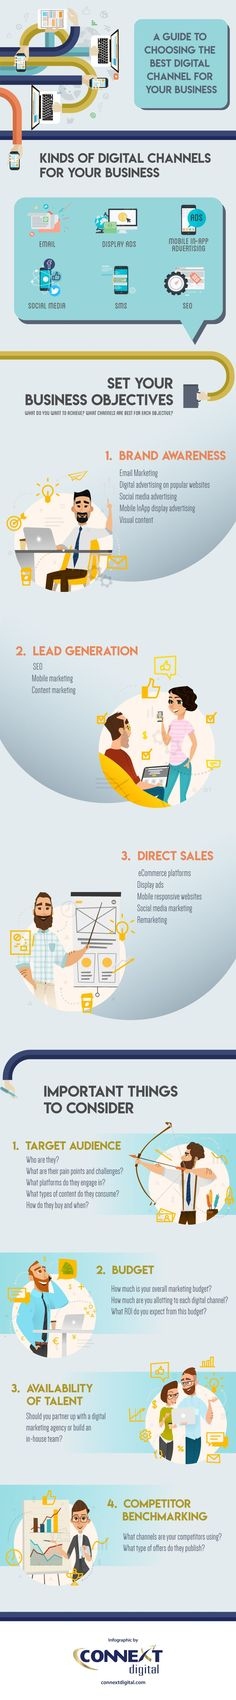 How to Choose the Best Digital Marketing Channel for Your Business [Infographic] | Social Media Today